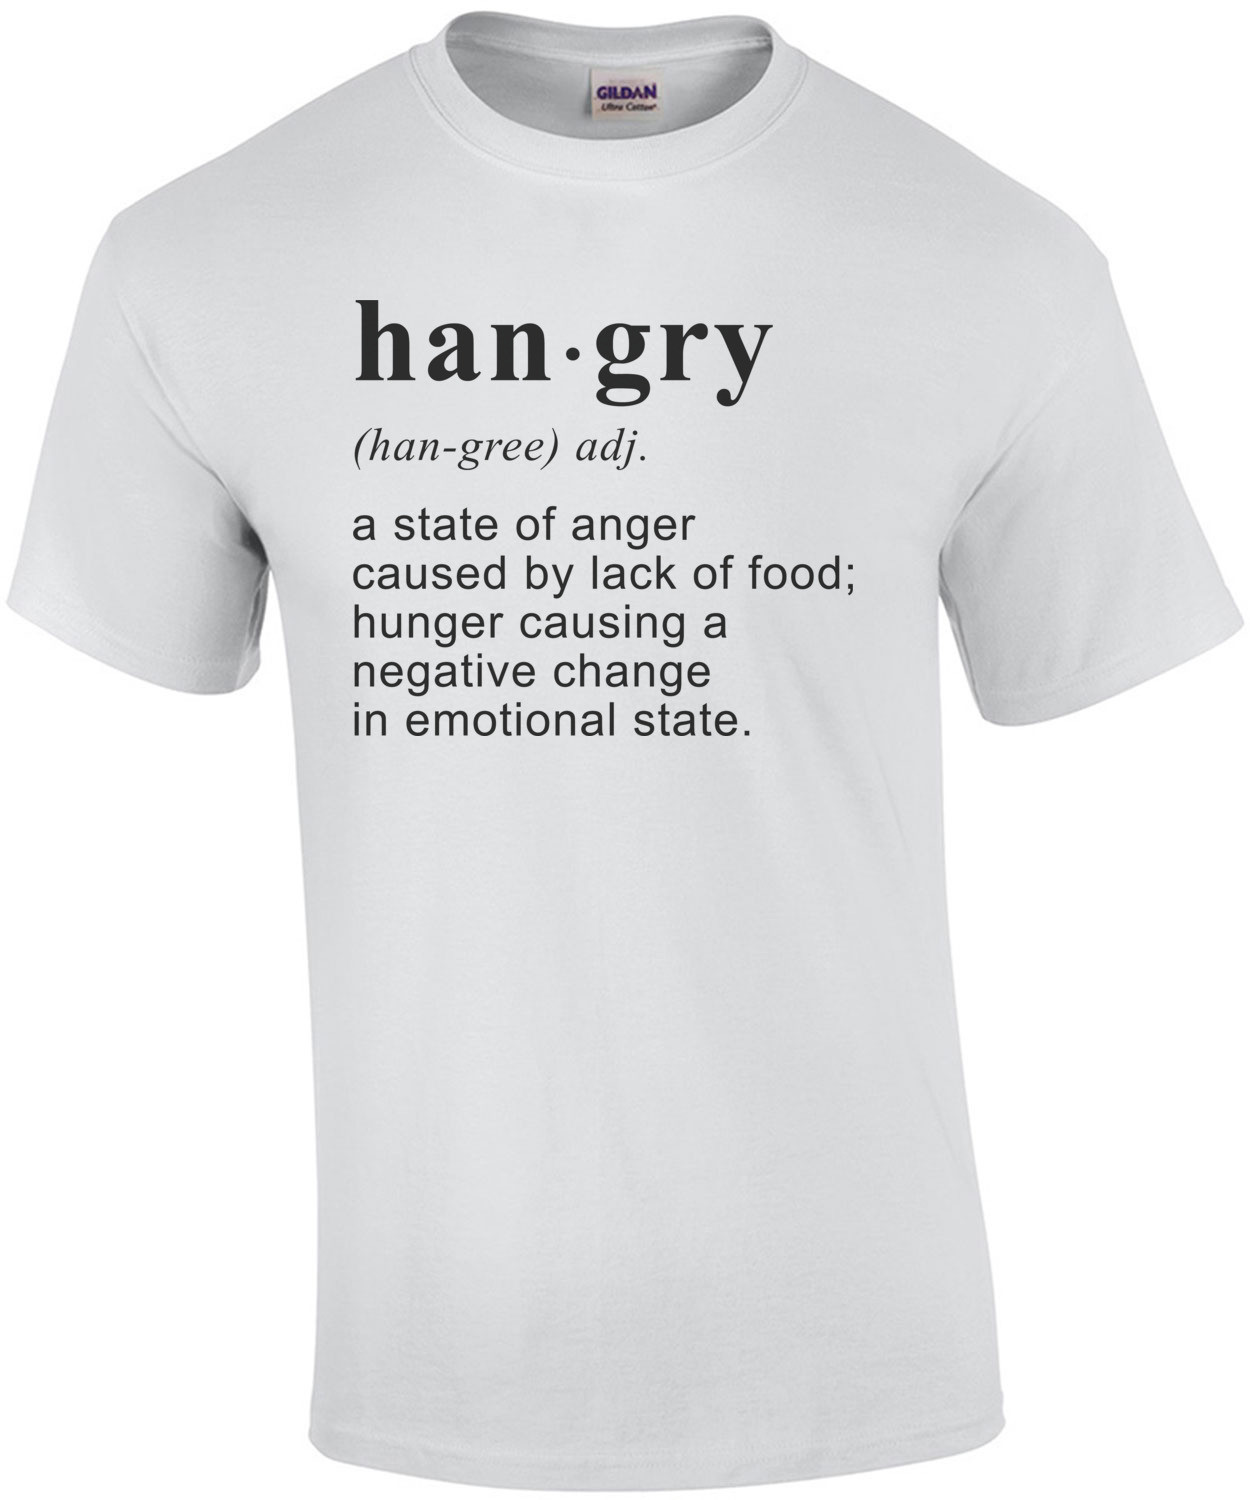 hangry - a state of anger caused by lack of food t-shirt